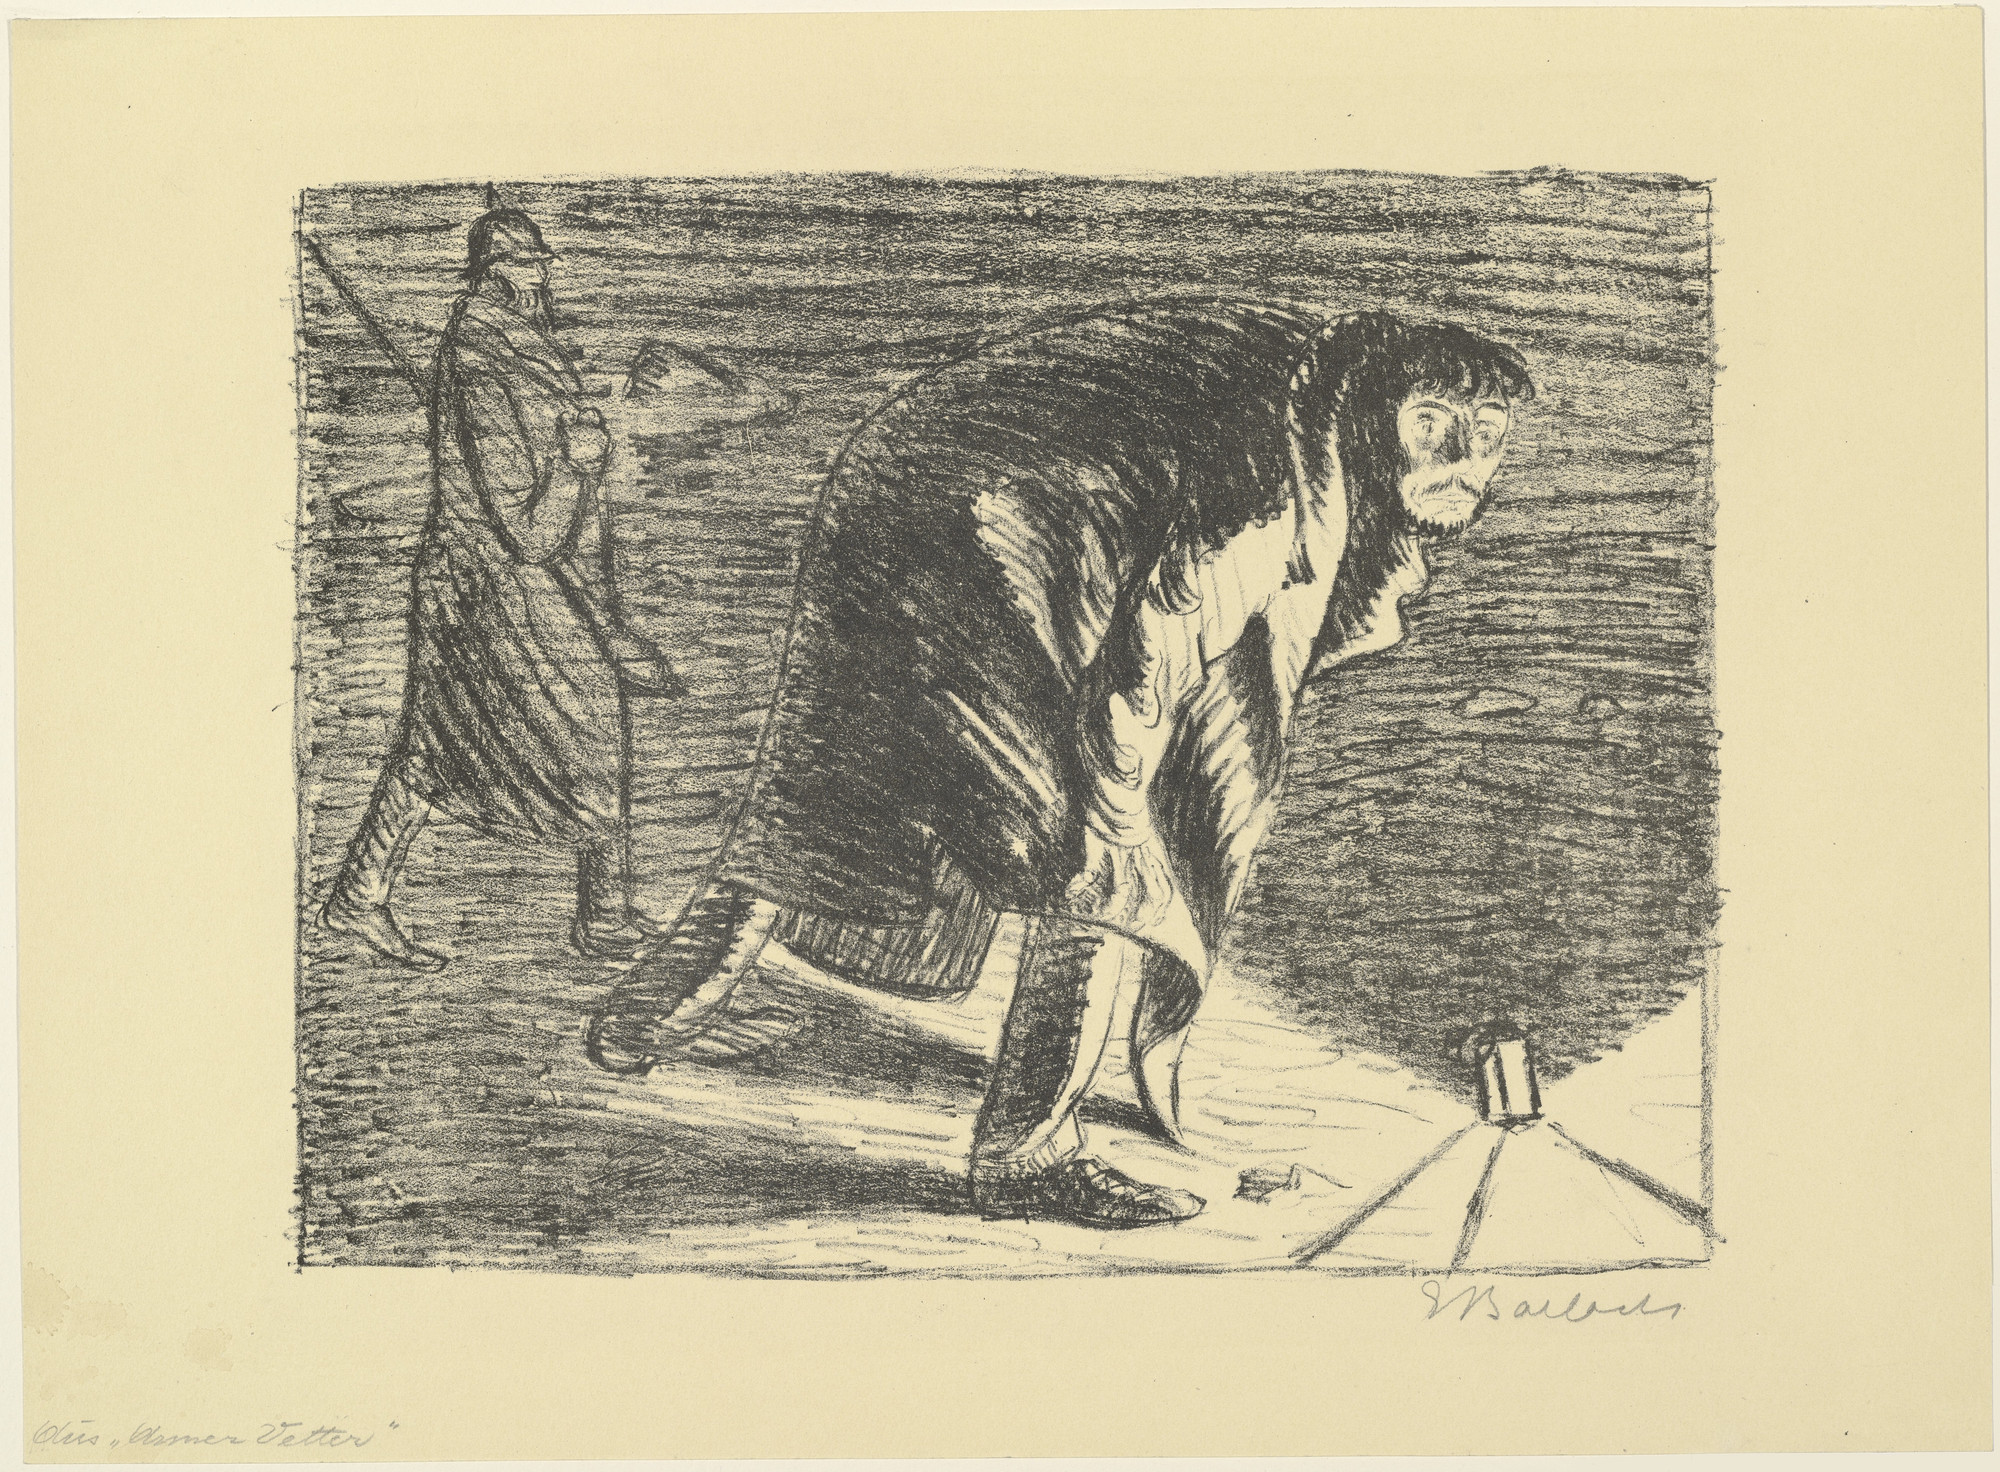 Ernst Barlach. Forlorn Light II (Verlorenes Licht II) from the portfolio The Poor Cousin (Der arme Vetter). (c. 1917, published 1919)